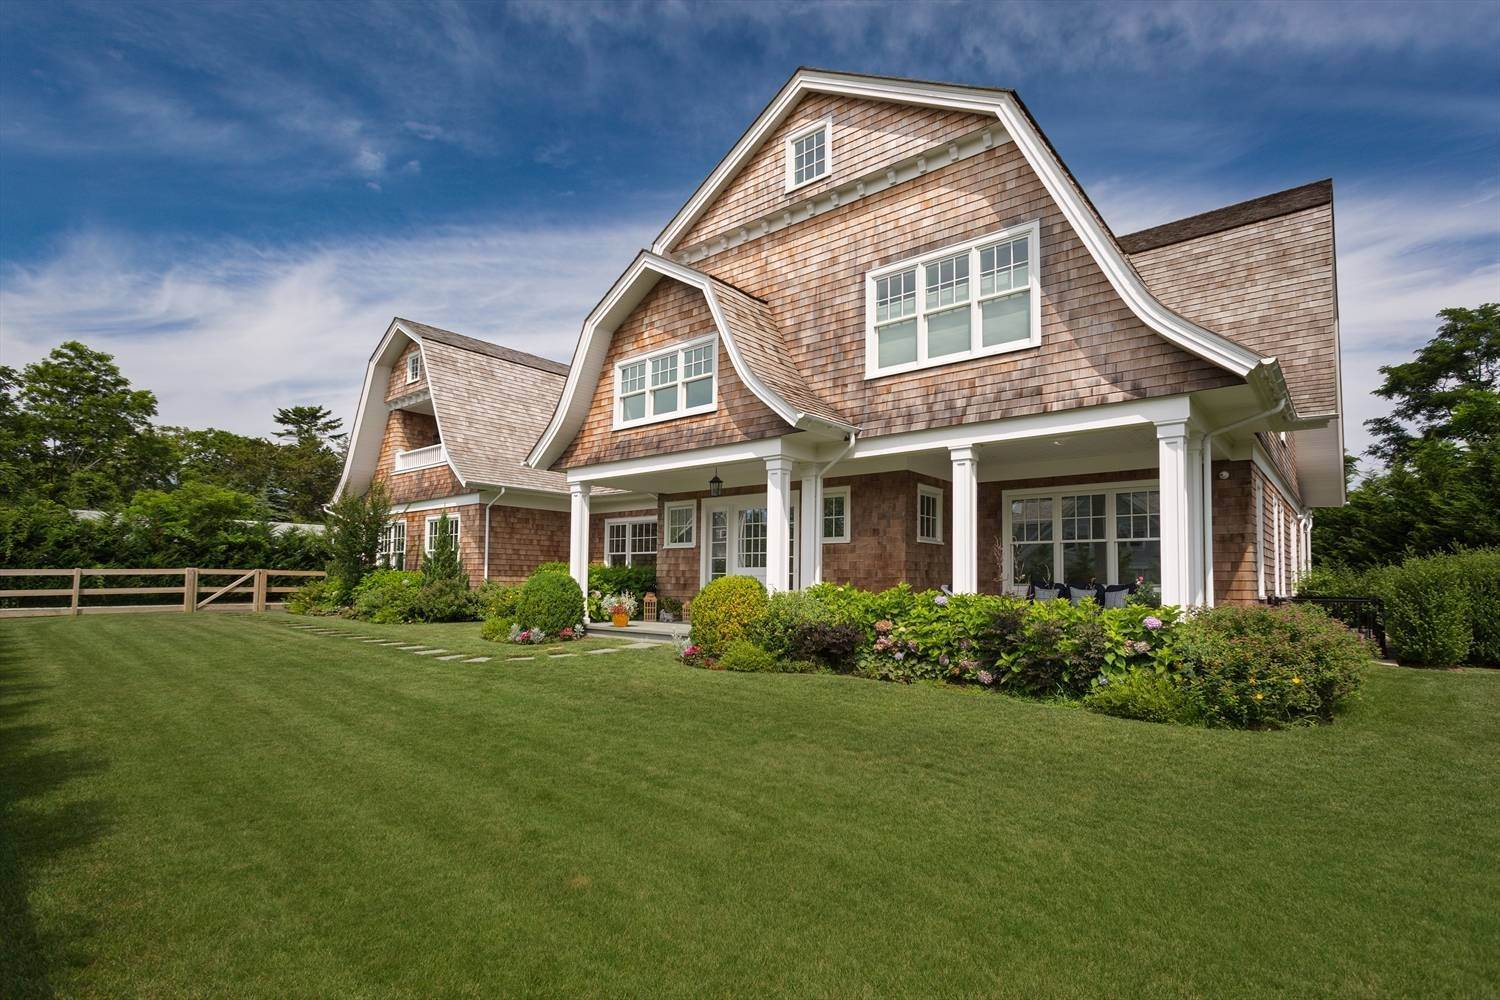 Single Family Home for Sale at Custom Village Home 15 Allen Court, Southampton, NY 11968